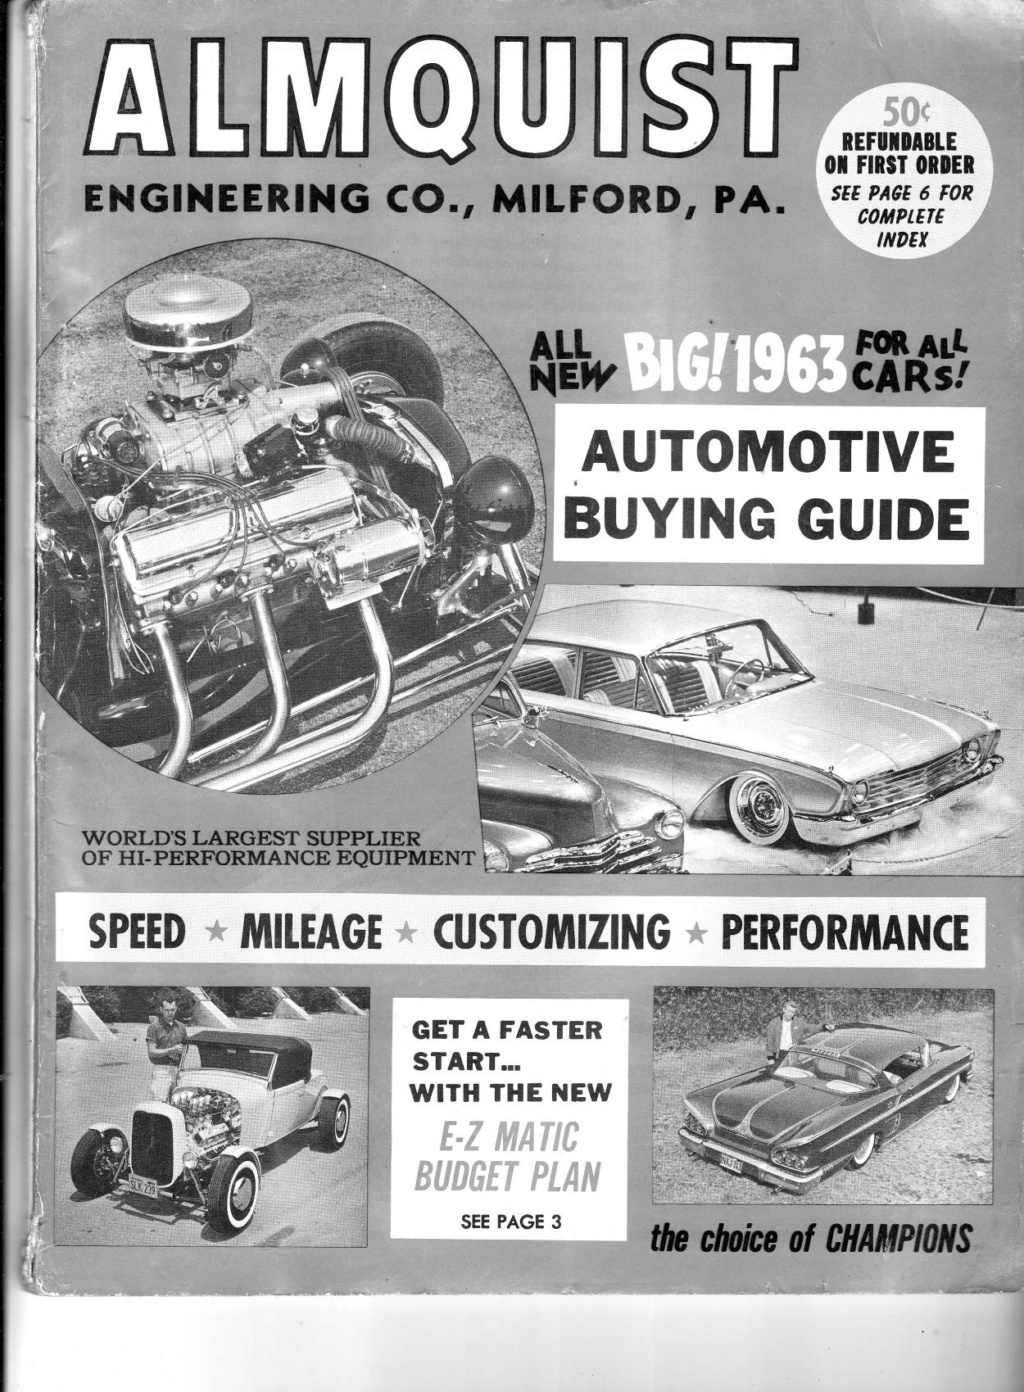 Almquist catalog, Speed, Mileage, Customizing, Performance - World's largest supplier of hi-performance equipement -  1963 Img_0010